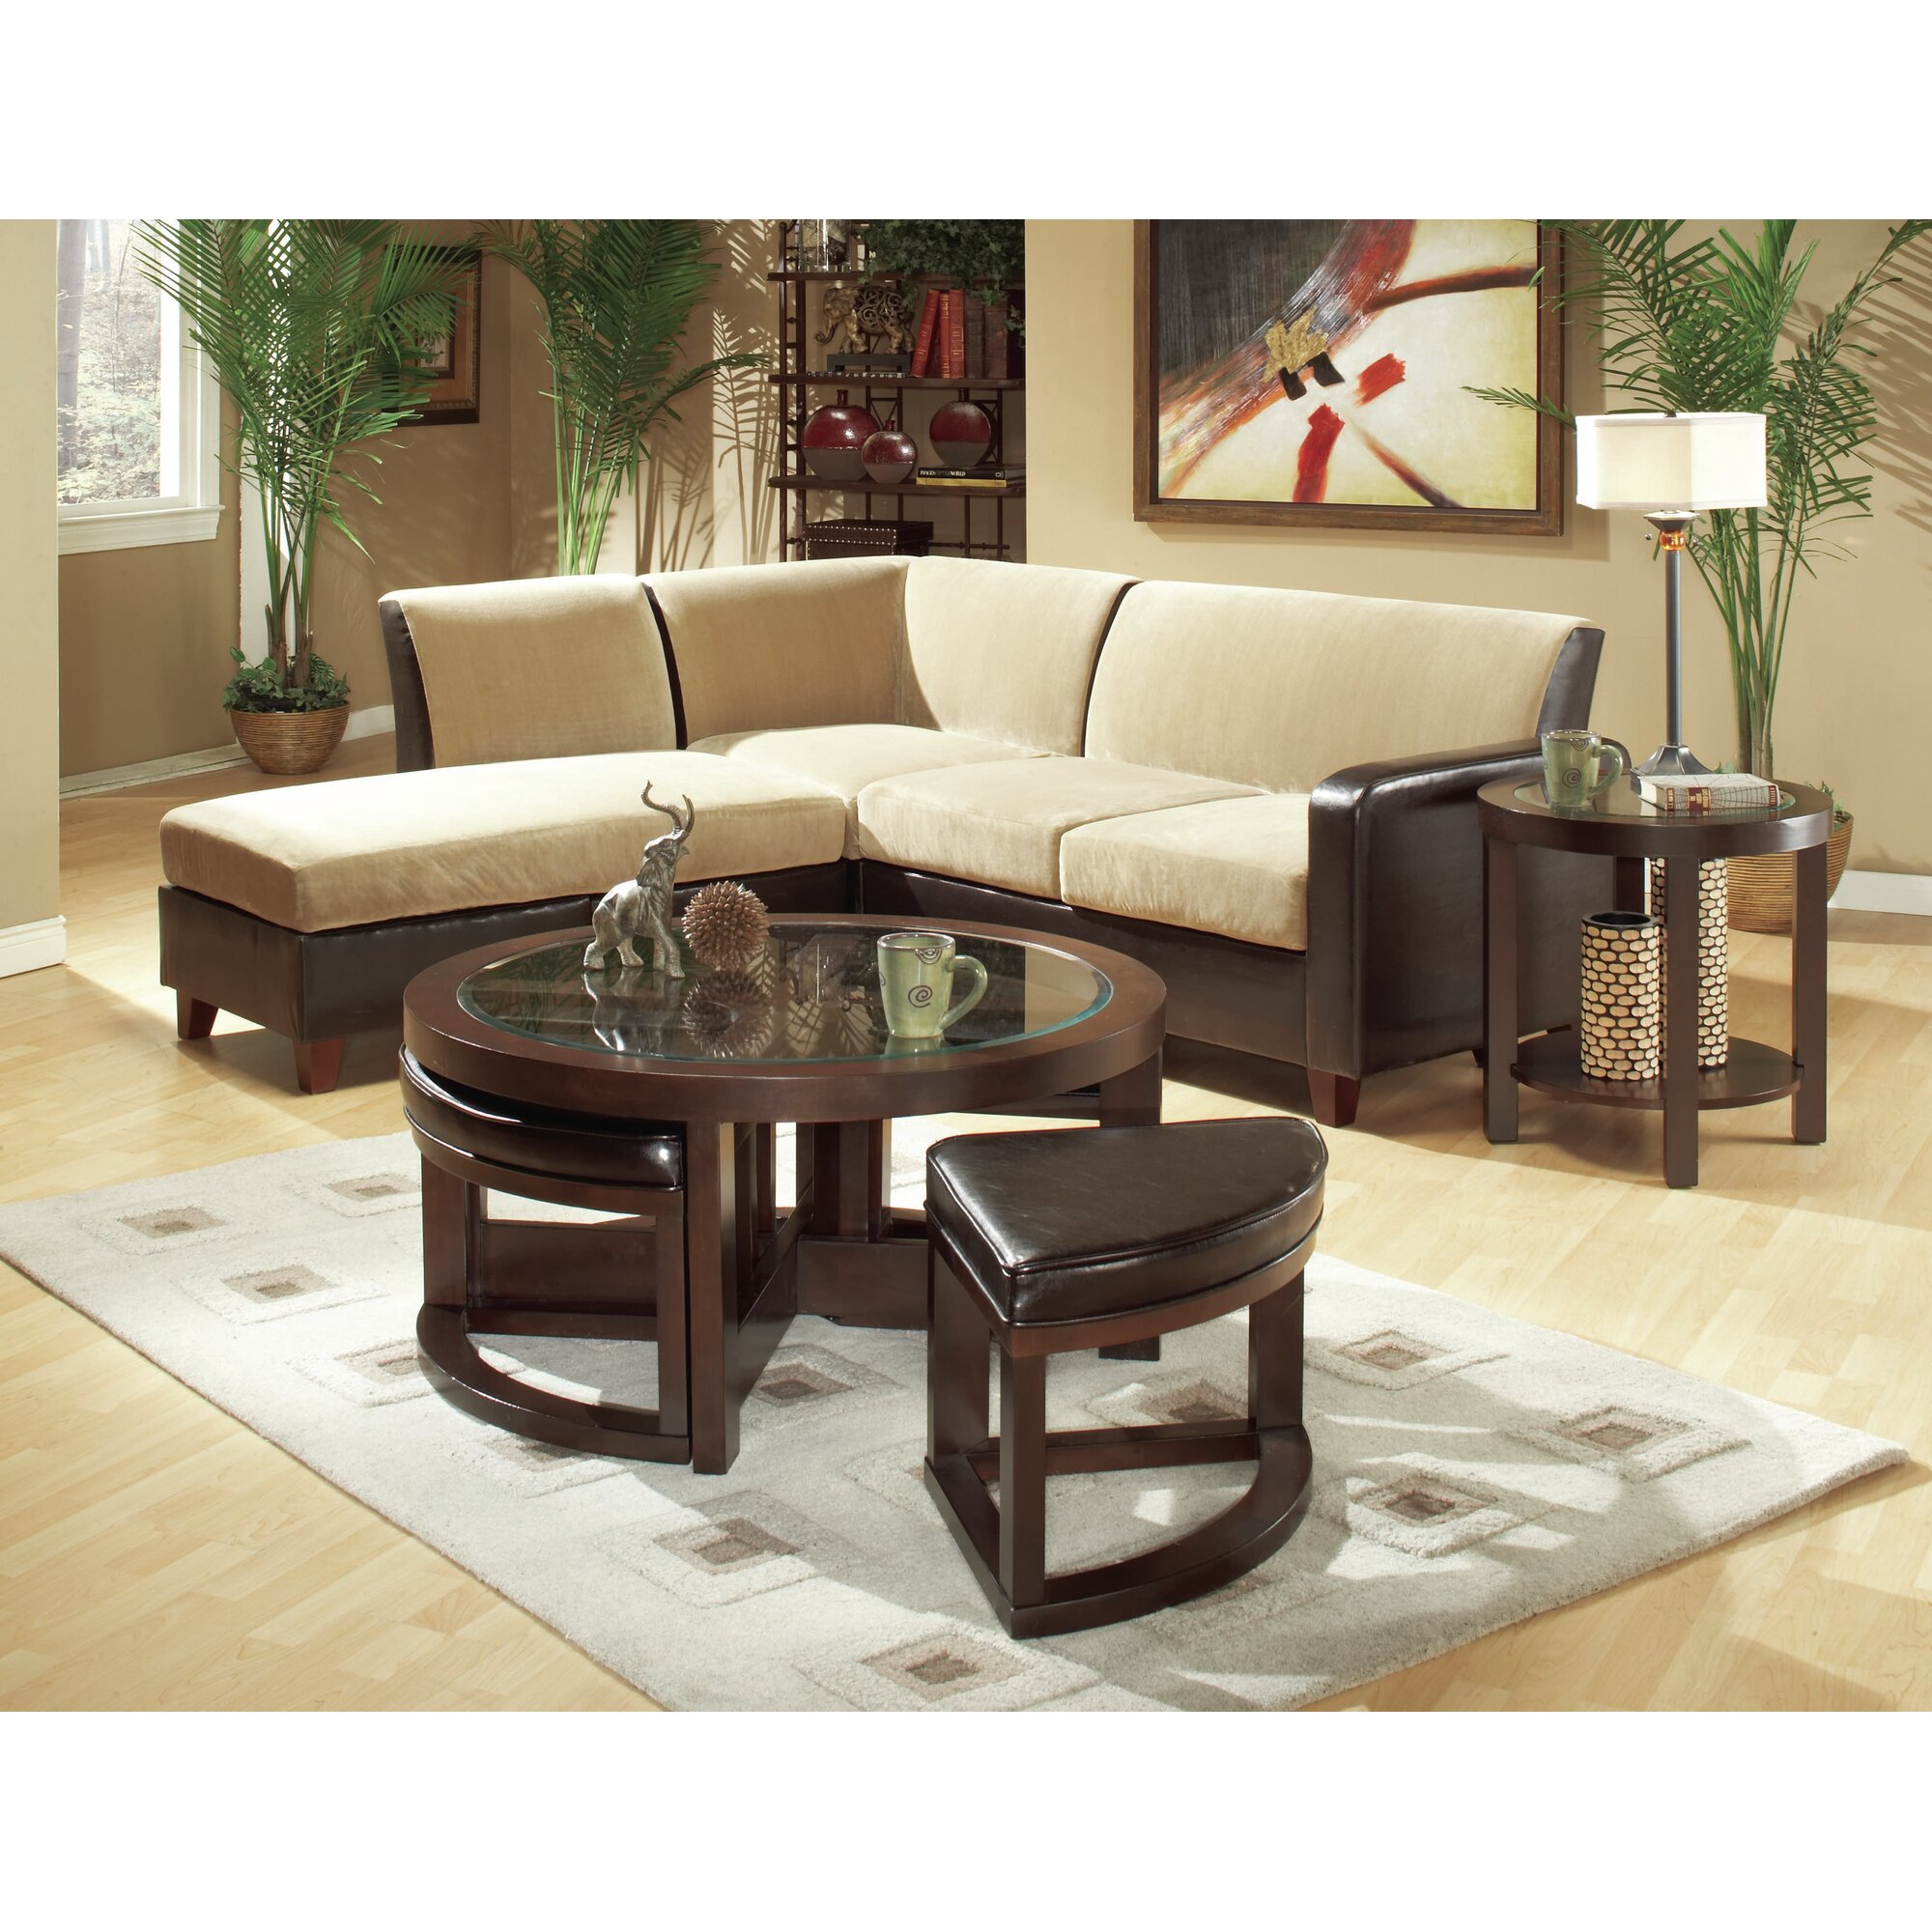 Woodhaven Hill 3219 Series Coffee Table With 4 Ottomans Reviews Wayfair